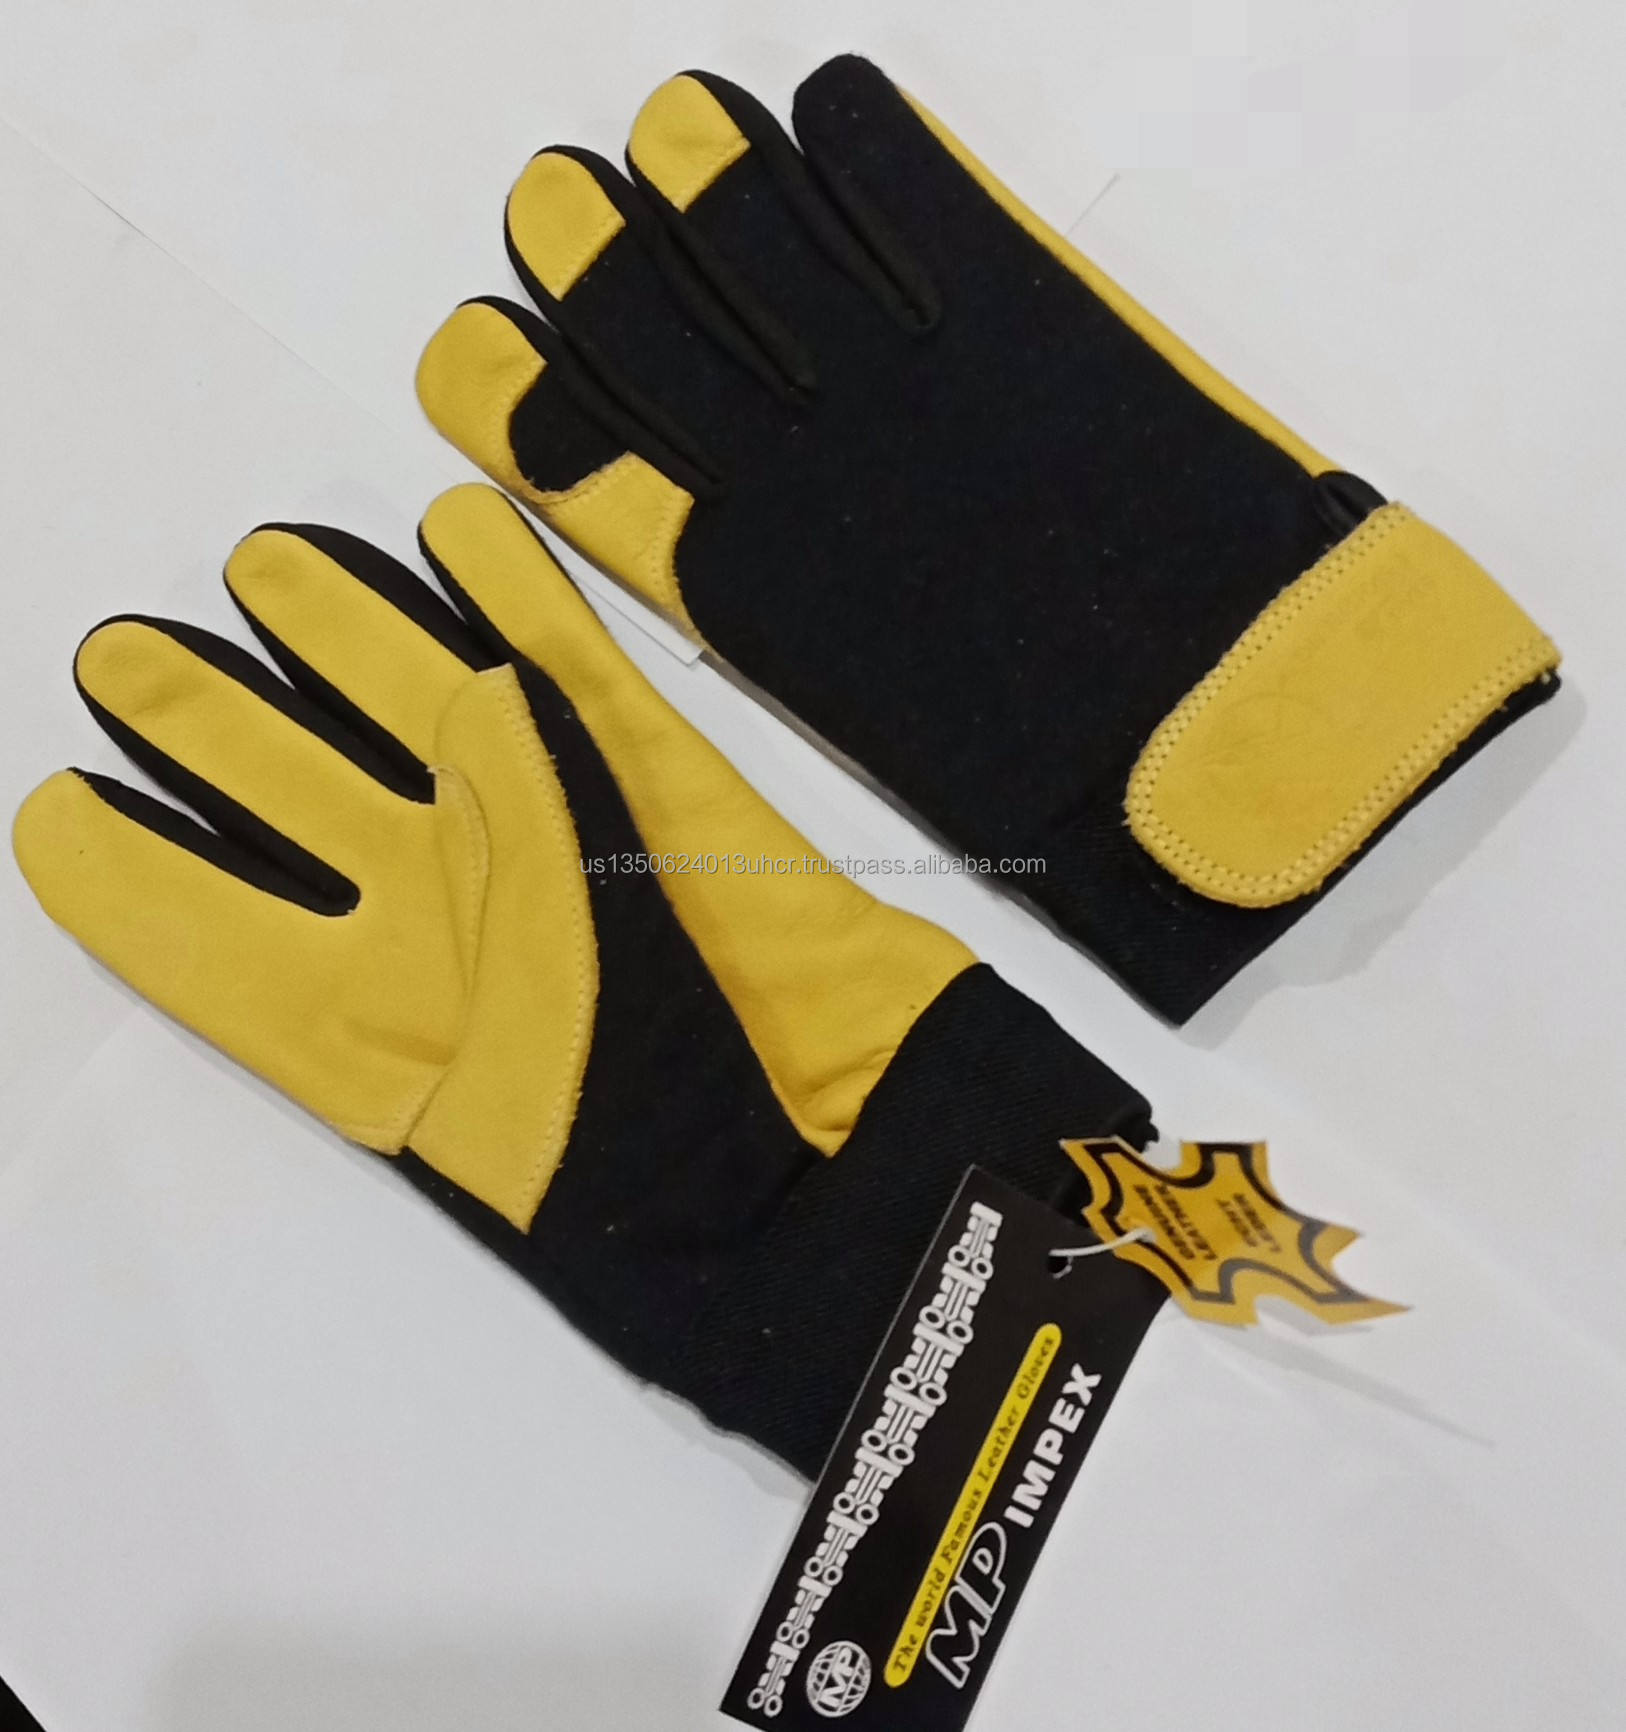 FIRE PROOF Mechanic Gloves SAFETY GLOVES Genuine Leather Palm And Fingertips